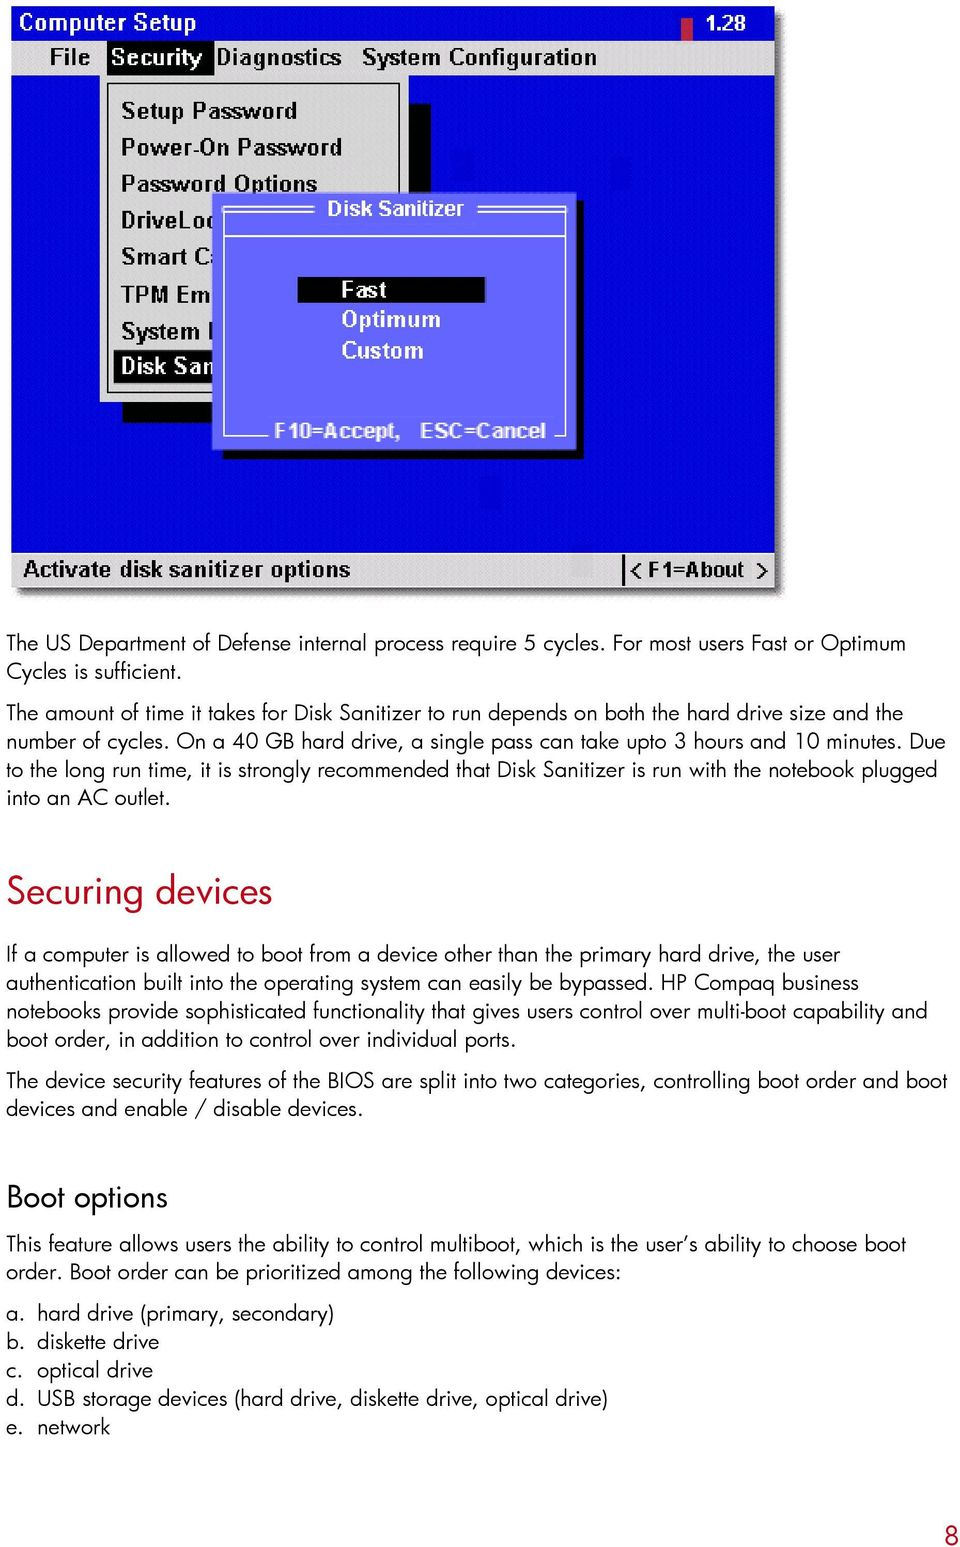 Firmware security features in HP Compaq business notebooks - PDF